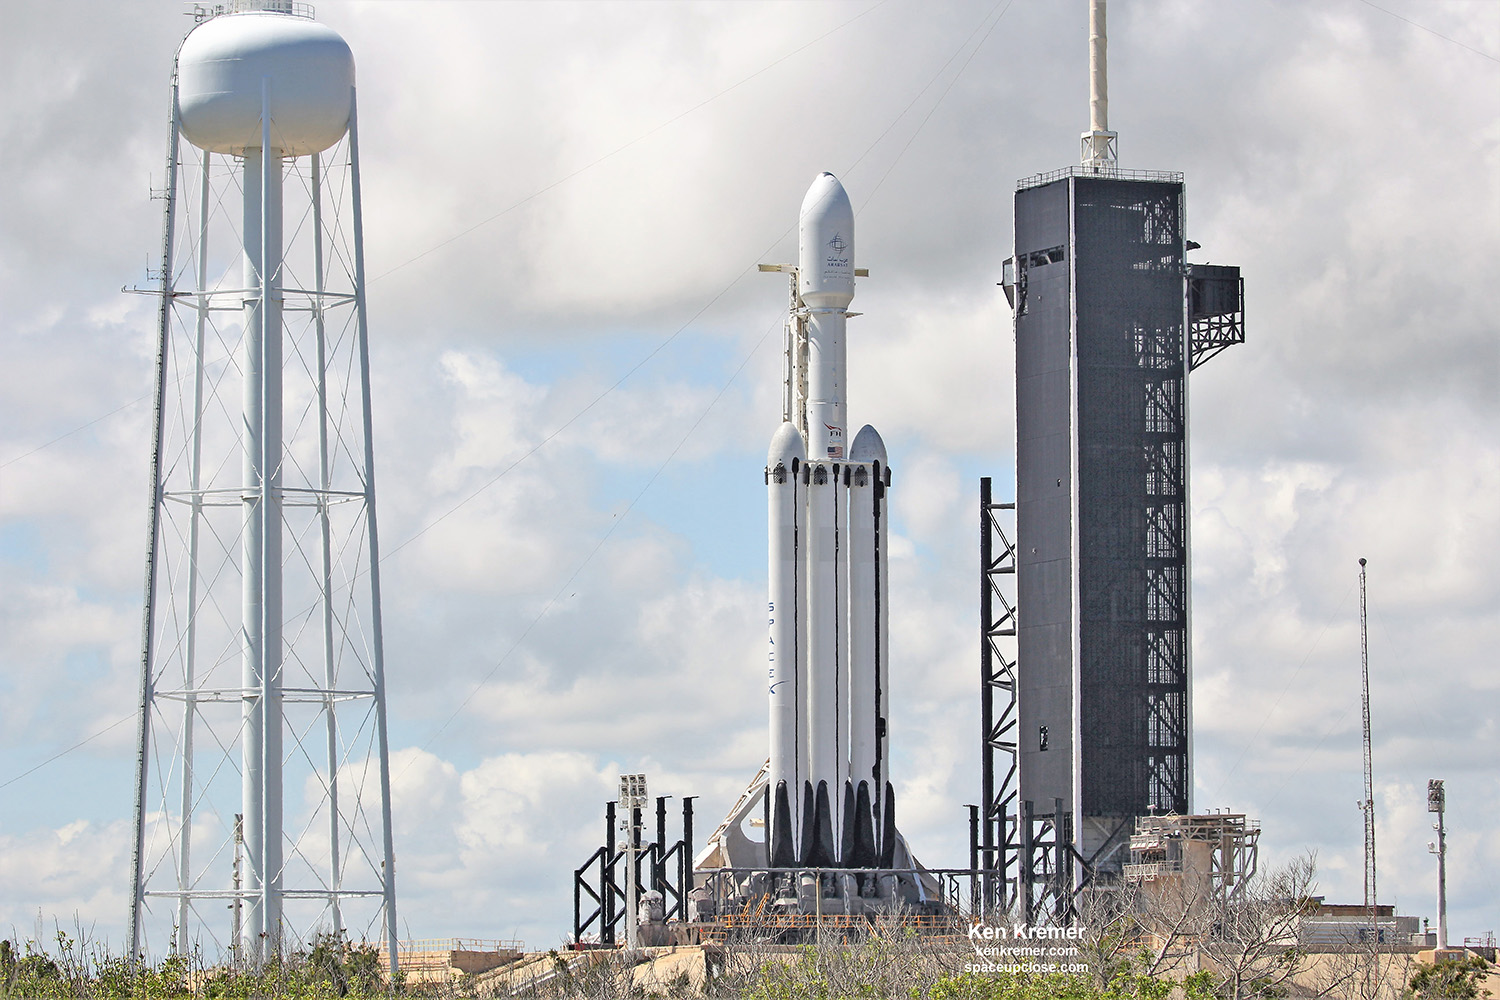 NASA Selects SpaceX Falcon Heavy to Launch Psyche Metallic Asteroid Mission